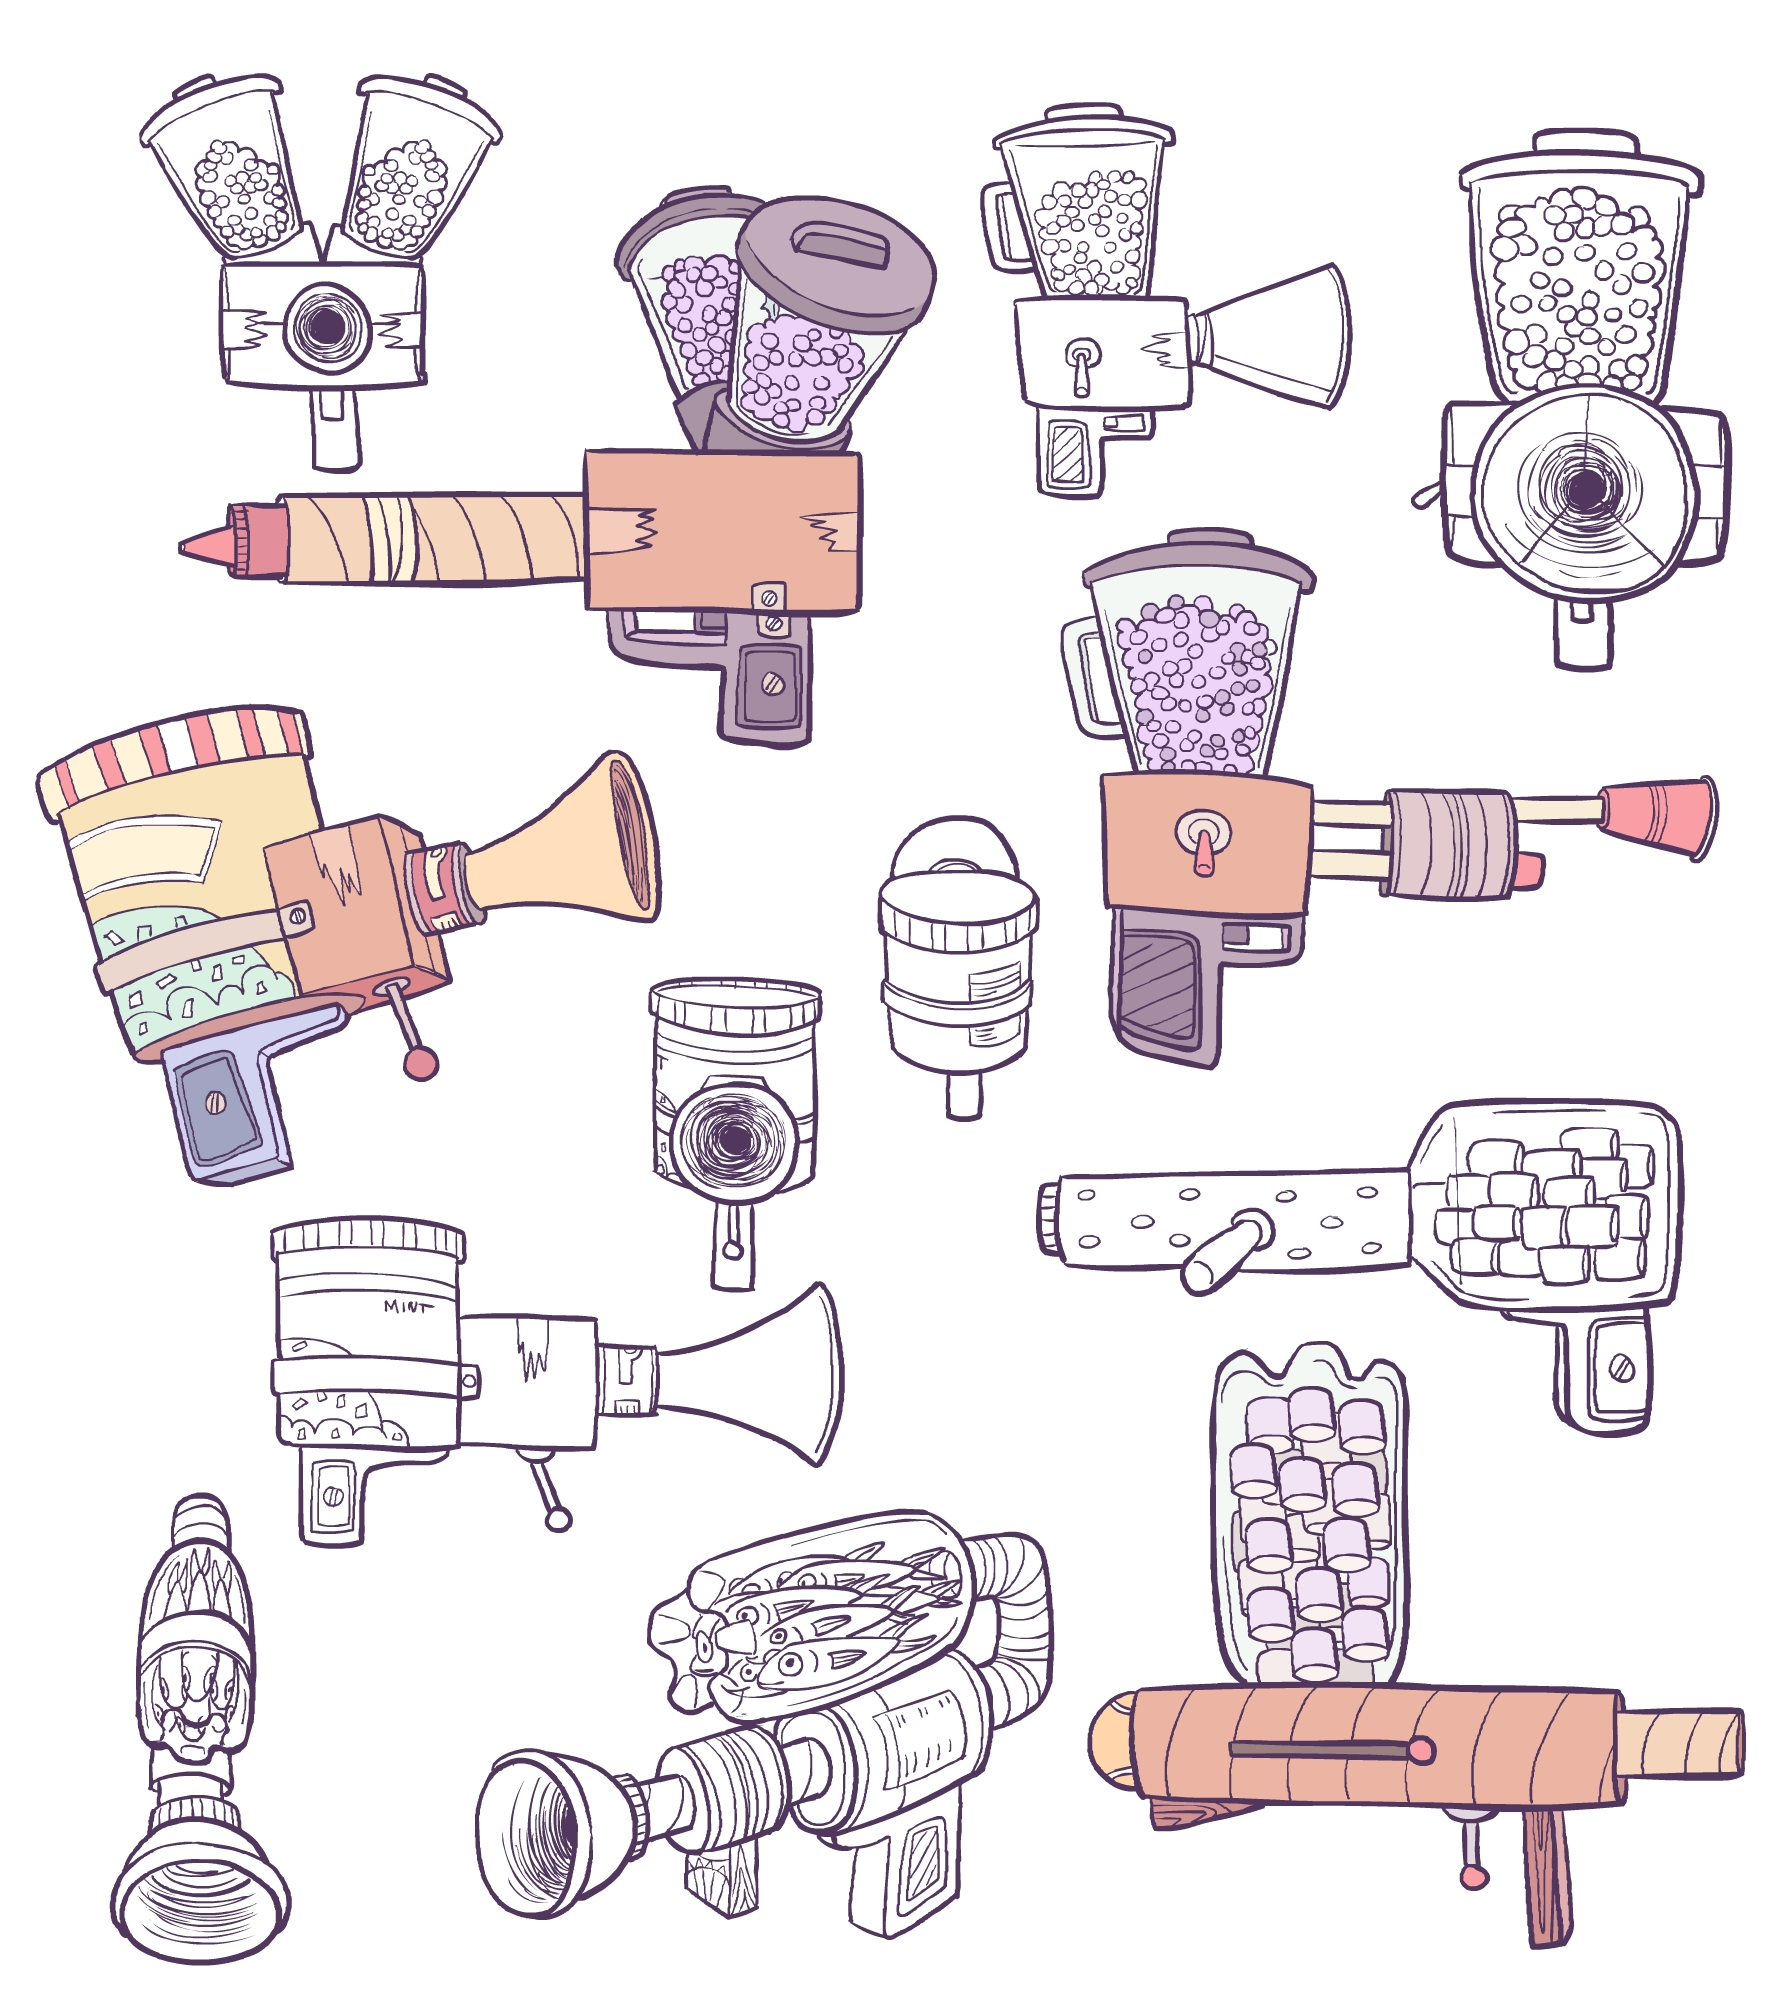 Weapon design_v03_2.jpg